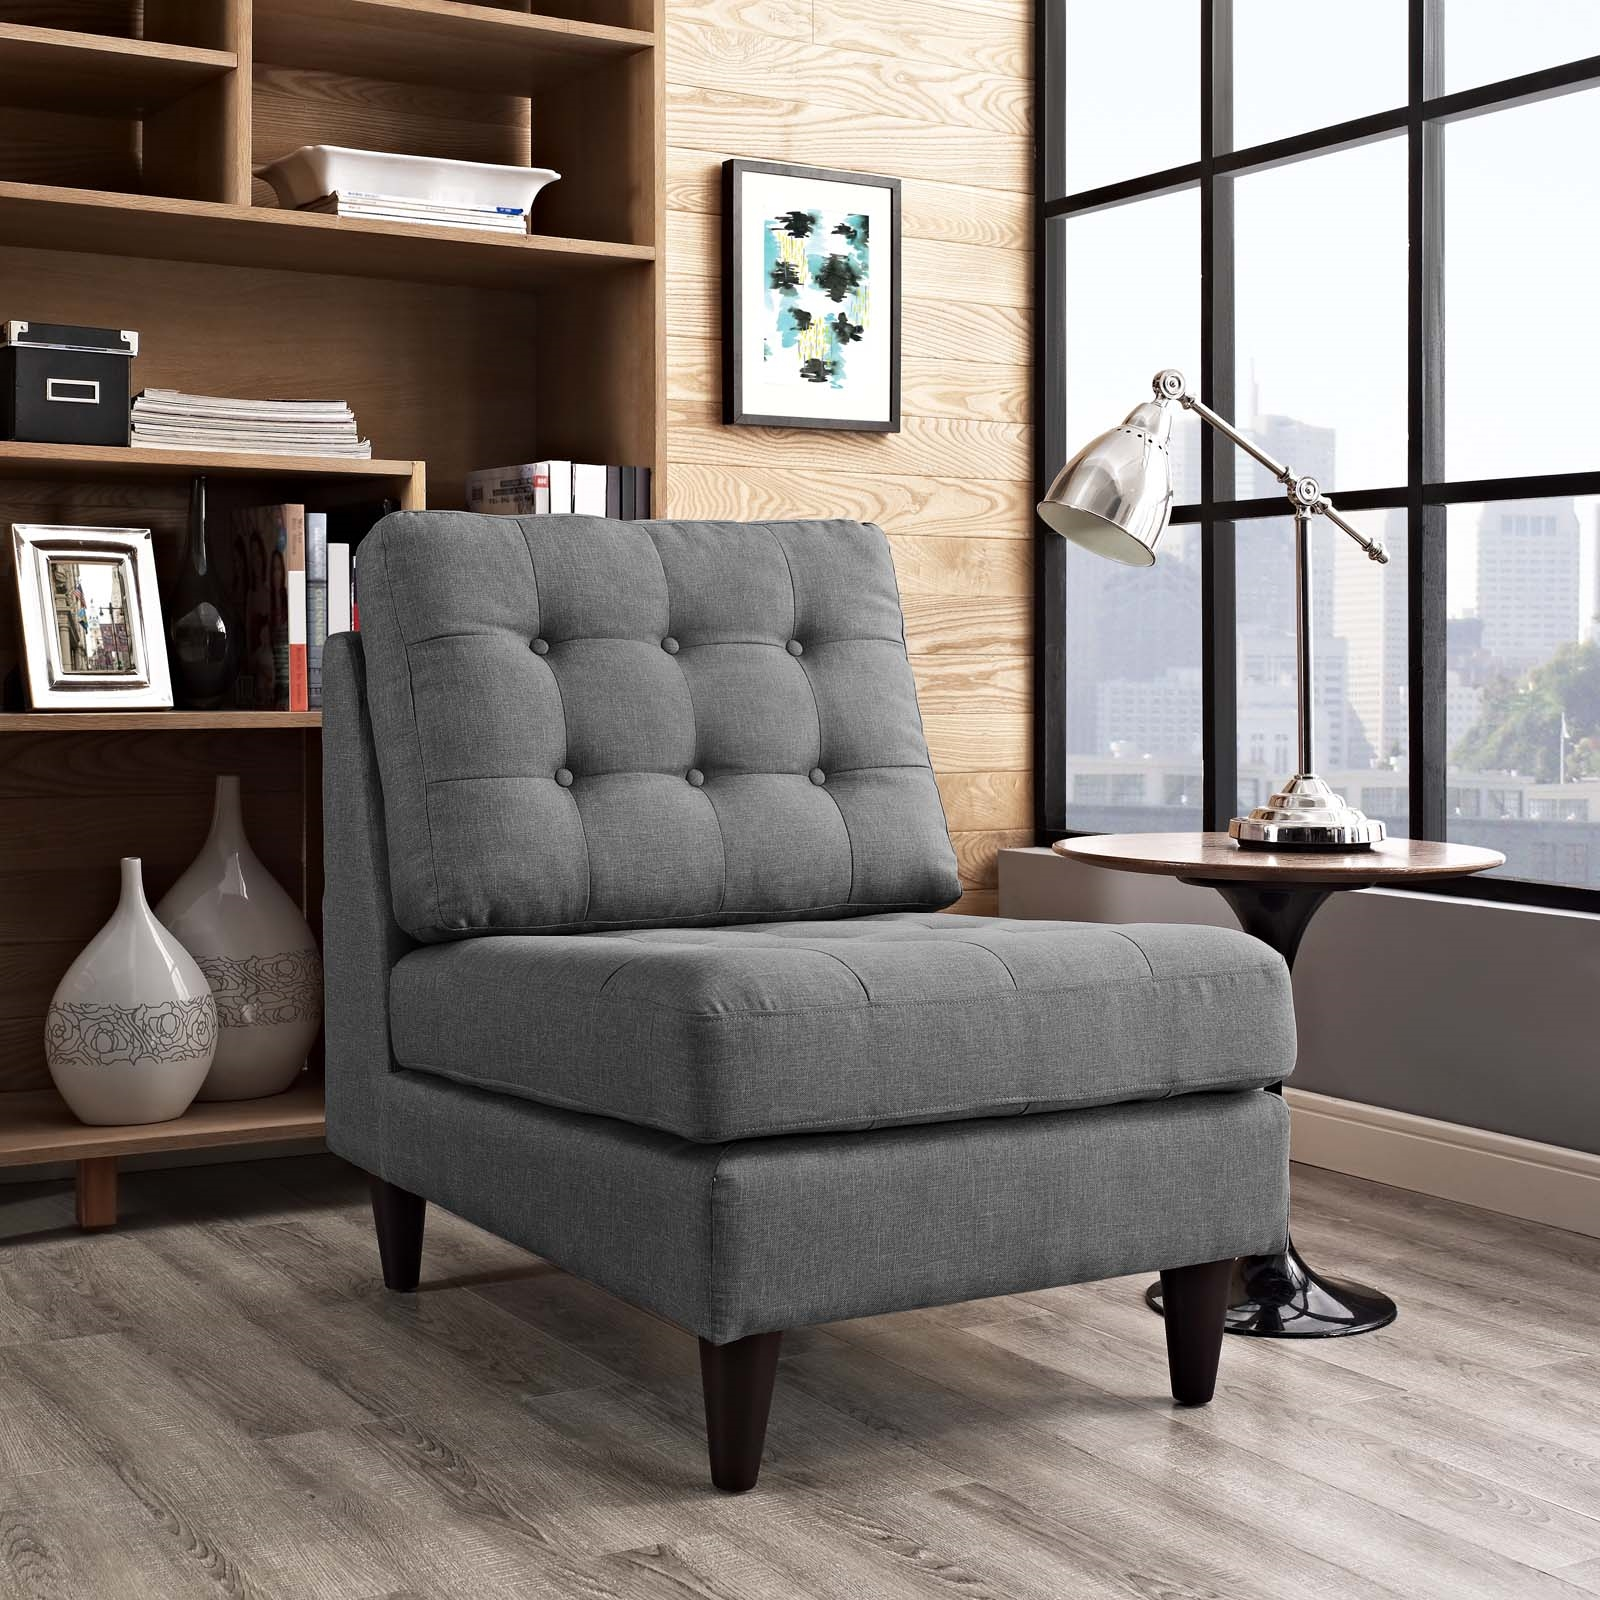 Empress Upholstered Fabric Lounge Chair in Gray